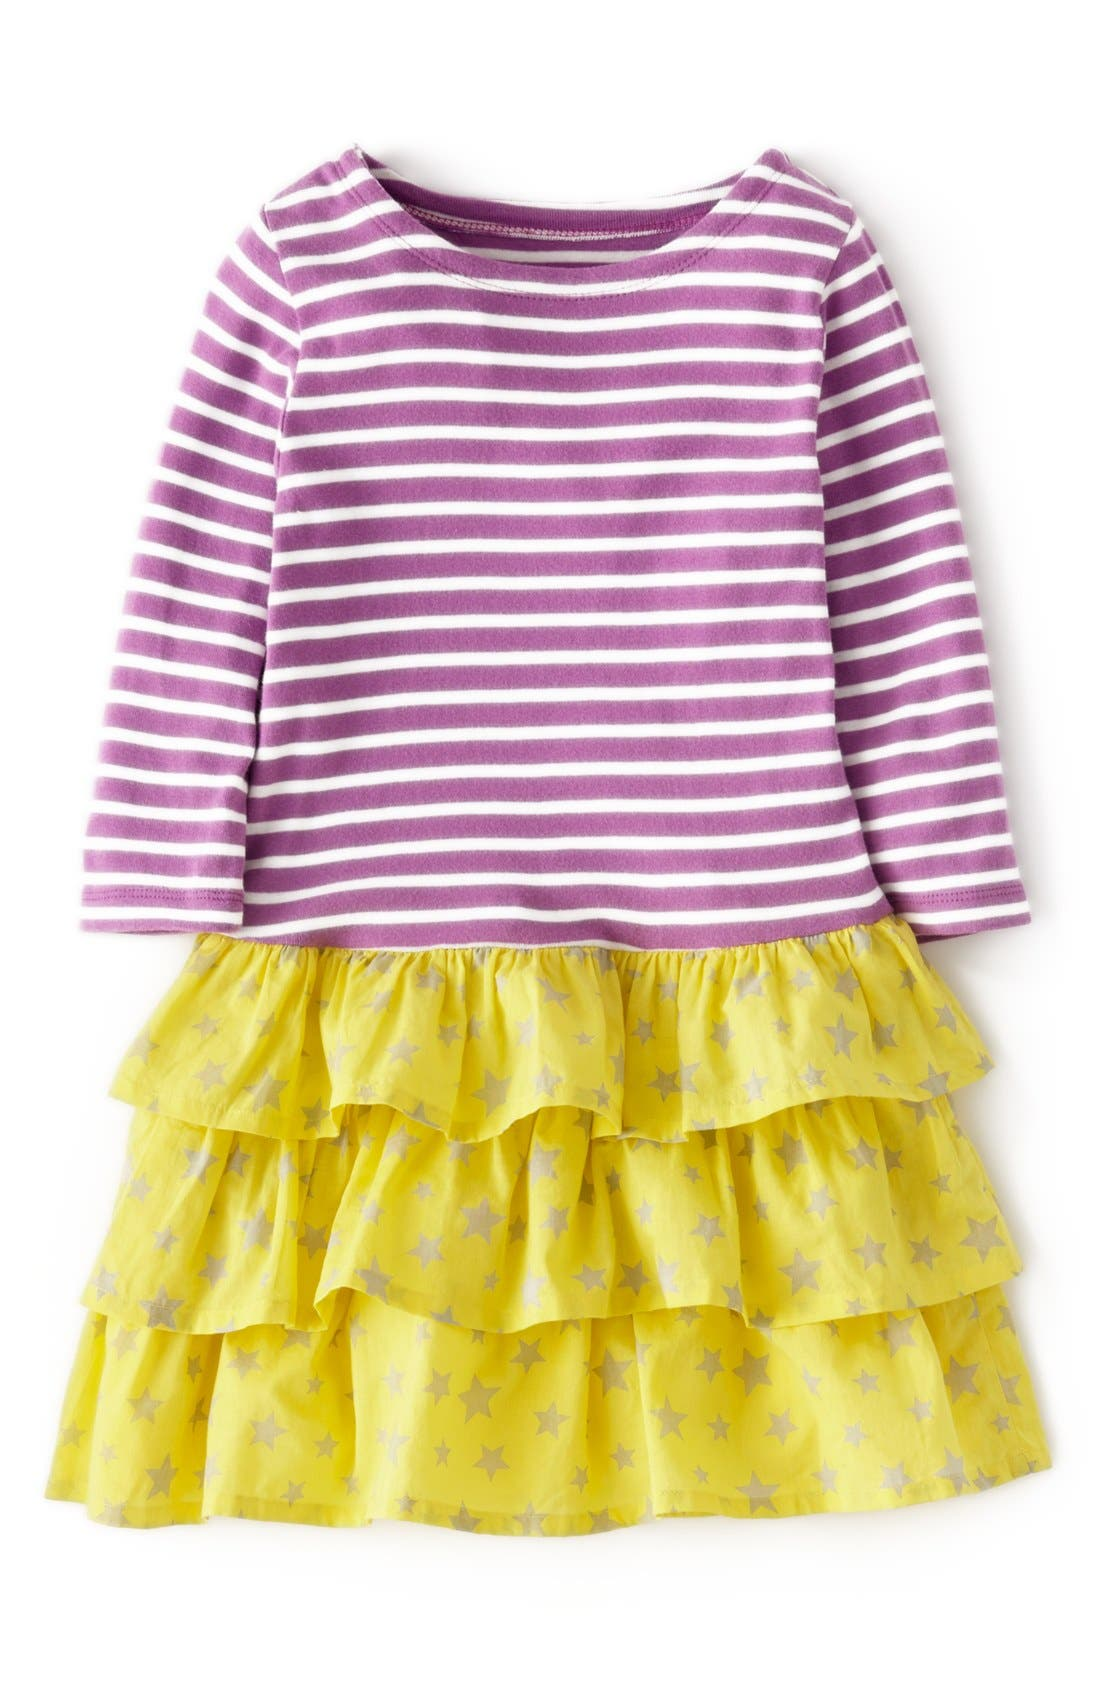 Alternate Image 1 Selected - Mini Boden Stripy Ruffle Dress (Toddler Girls, Little Girls & Big Girls)(Online Only)